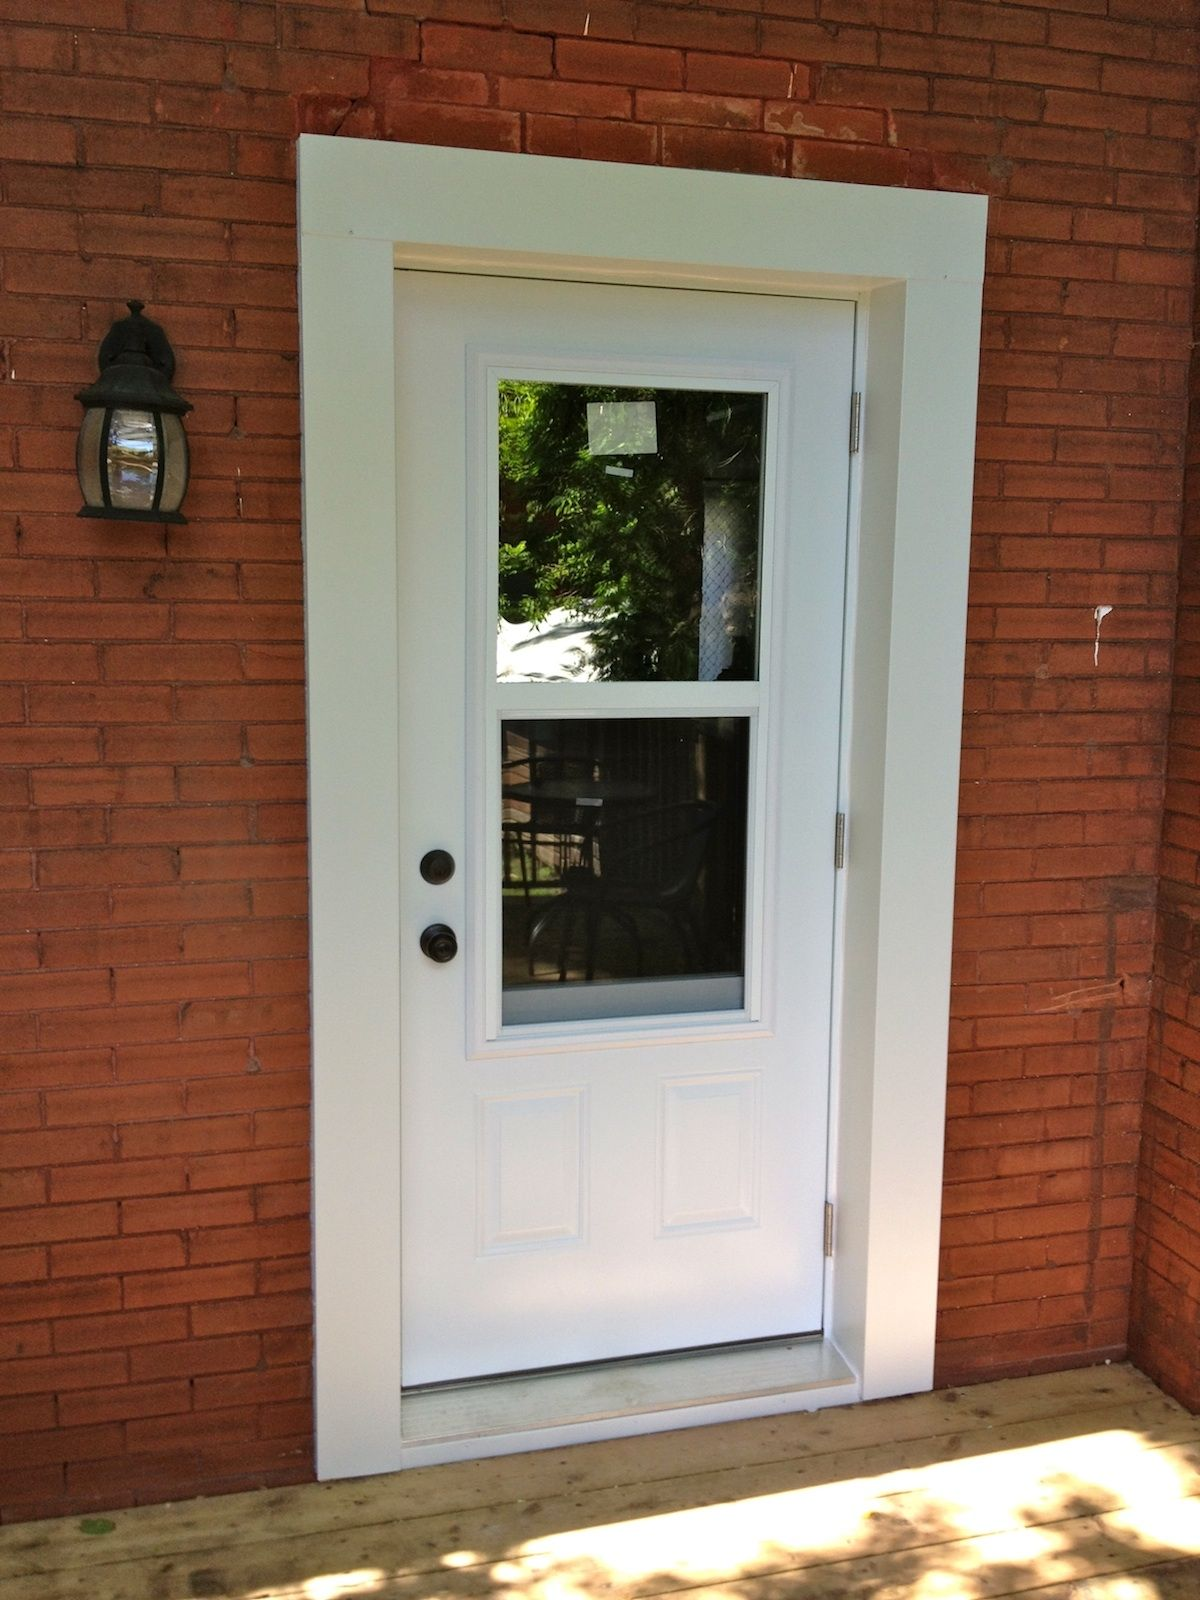 Exterior Door With Windows That Open Istranka for